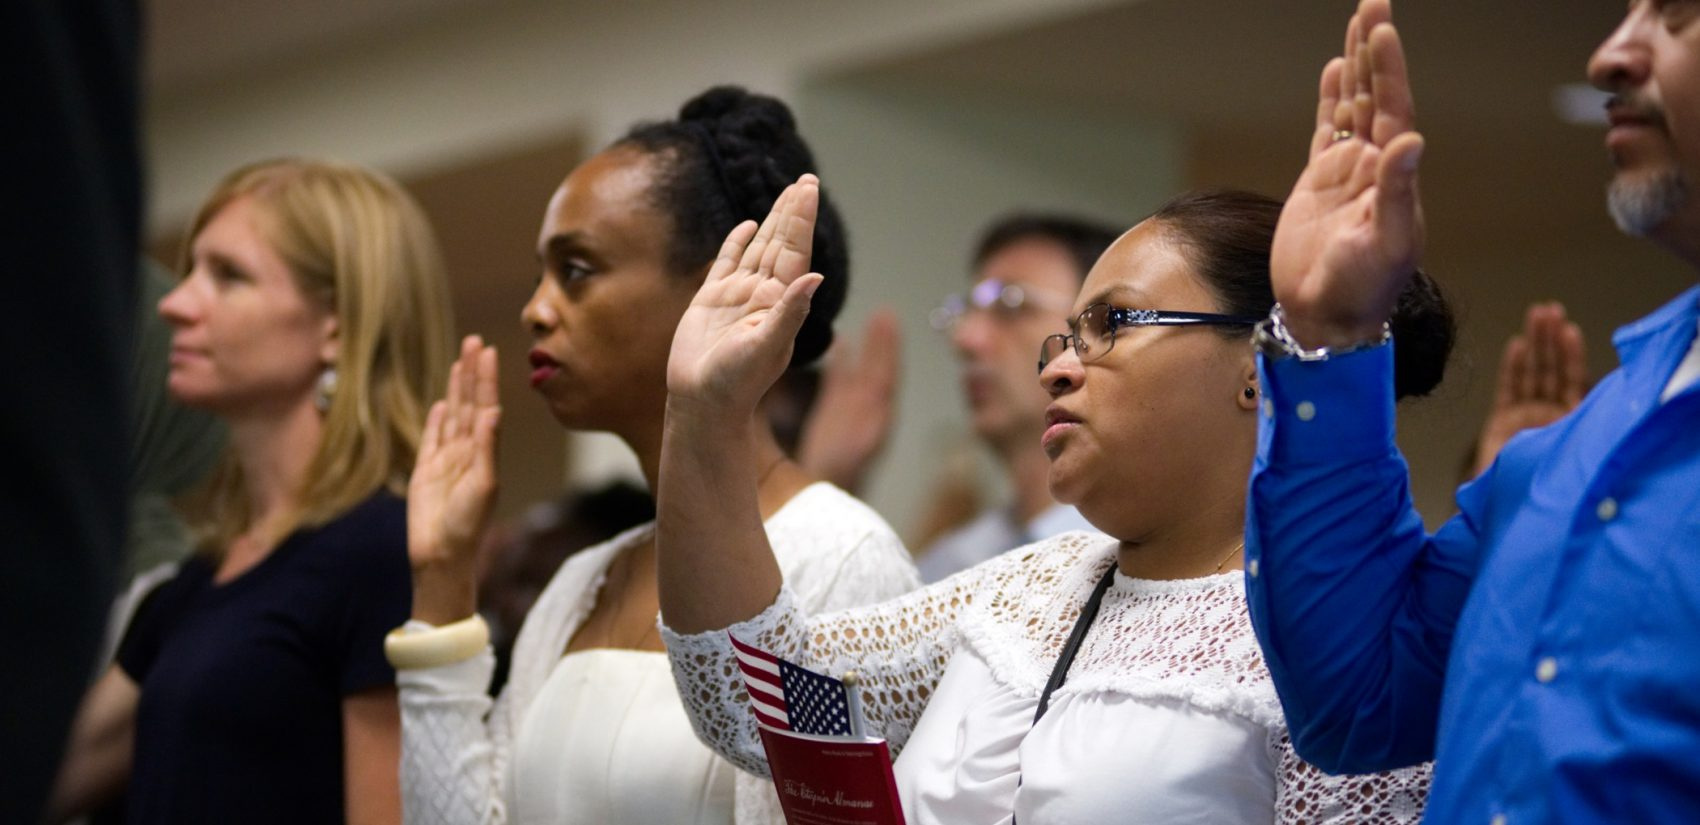 Naturalization ceremony at the United States Citizenship and Immigration Service, in University City, Philadelphia, PA, on August 28, 2017. (Bastiaan Slabbers for WHYY)